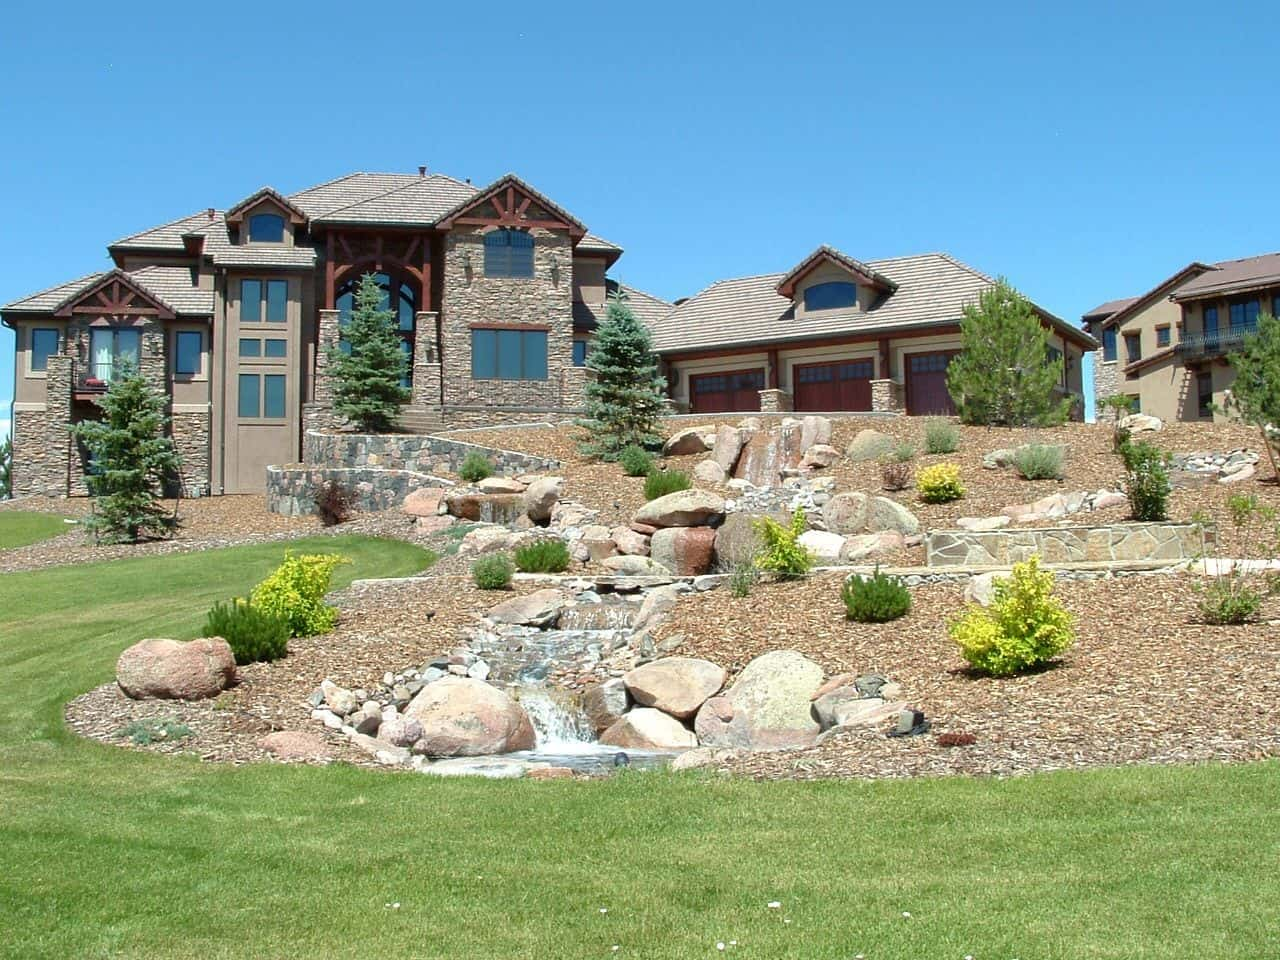 Stone facaded suburban mansion with successful slope landscape design at the front yard